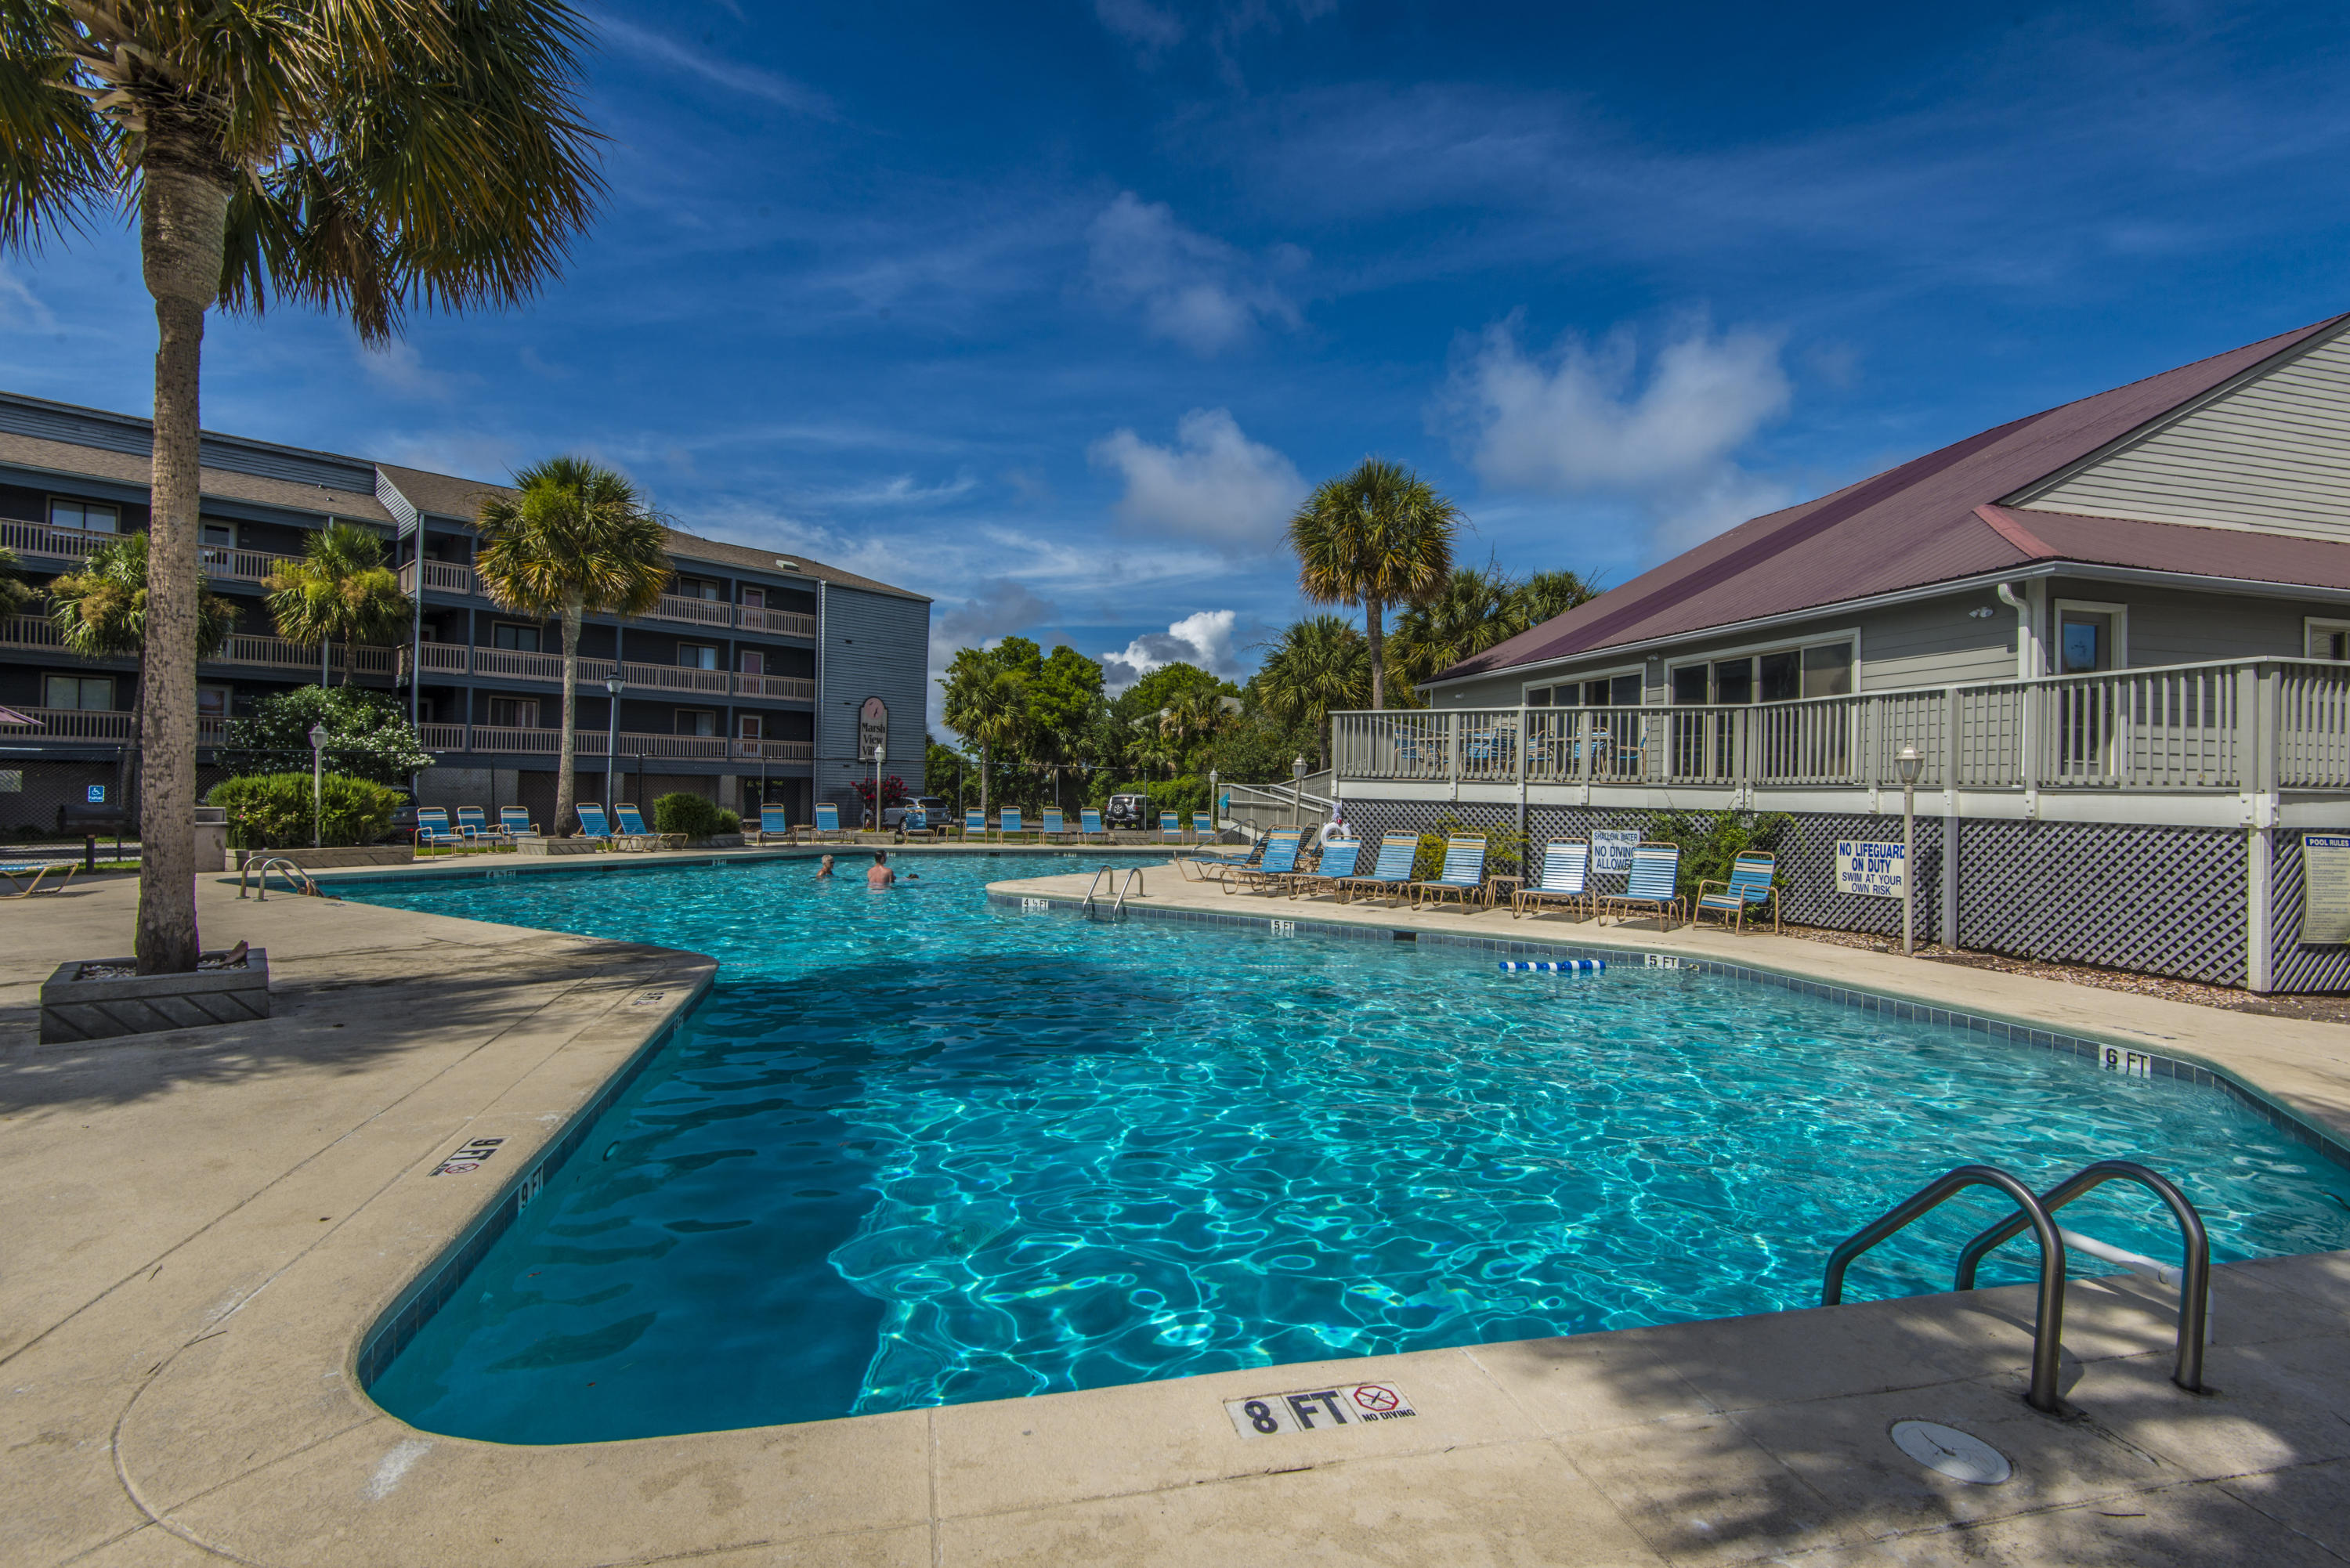 Mariners Cay Homes For Sale - 71 Mariners Cay, Folly Beach, SC - 15